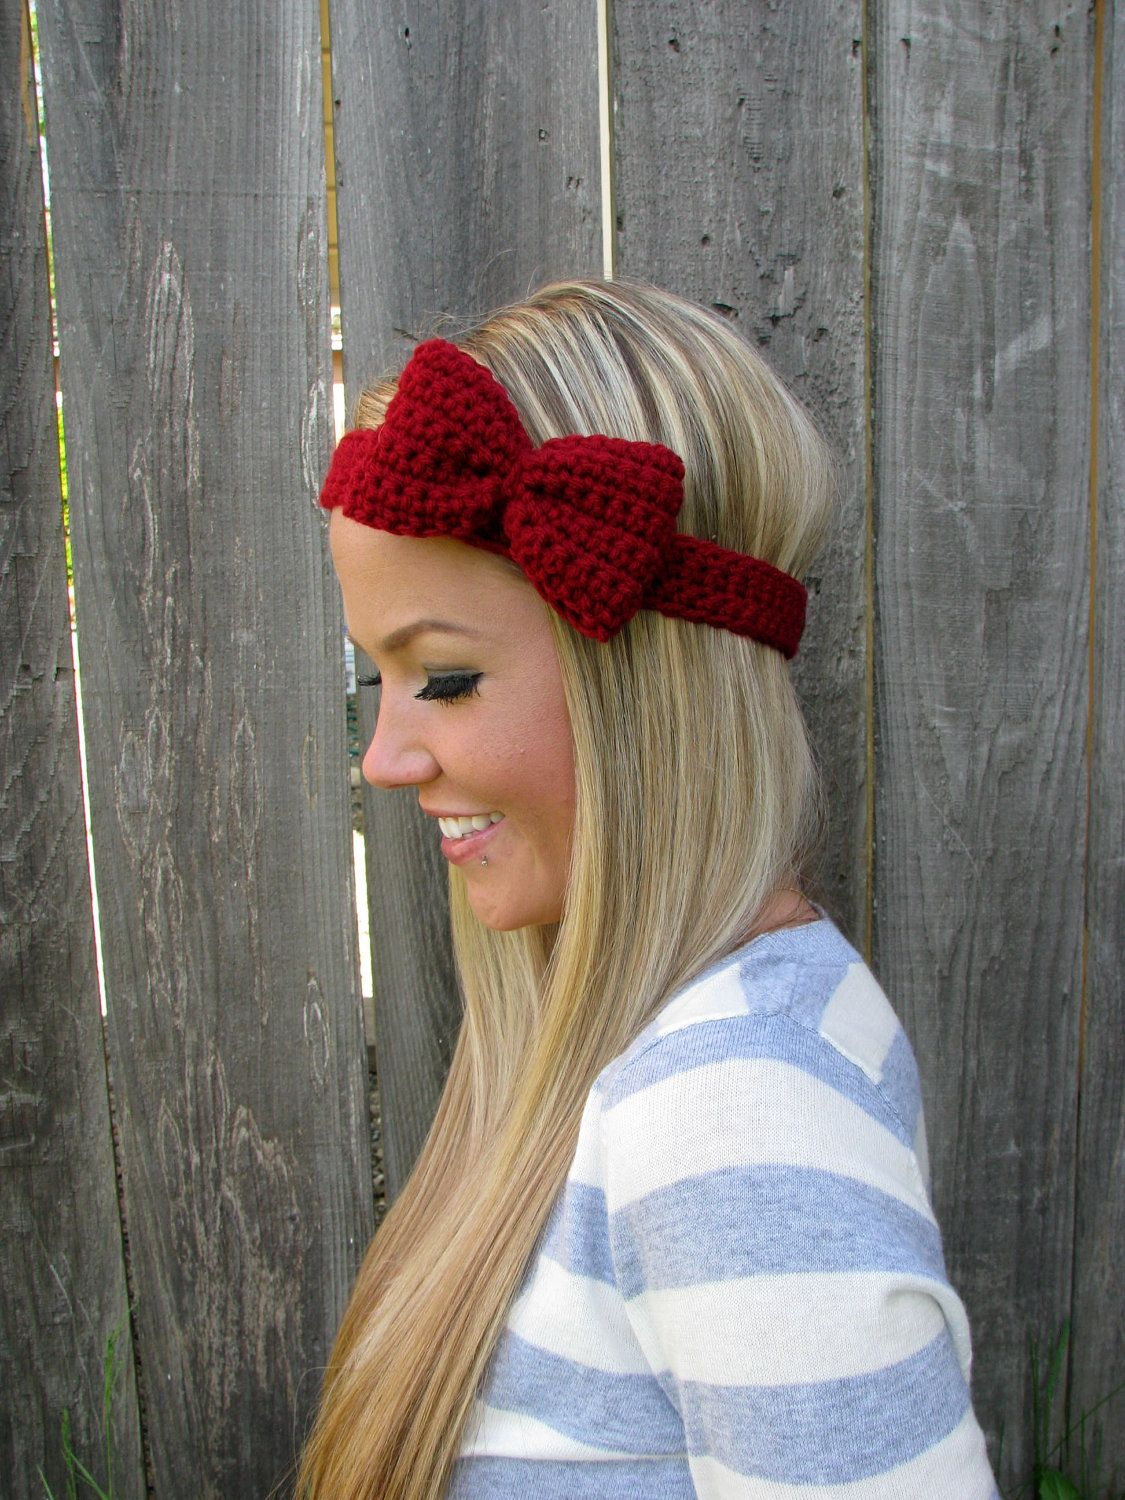 Crochet Bow Headband Perfect For Holidays Crochet Crochet Bows